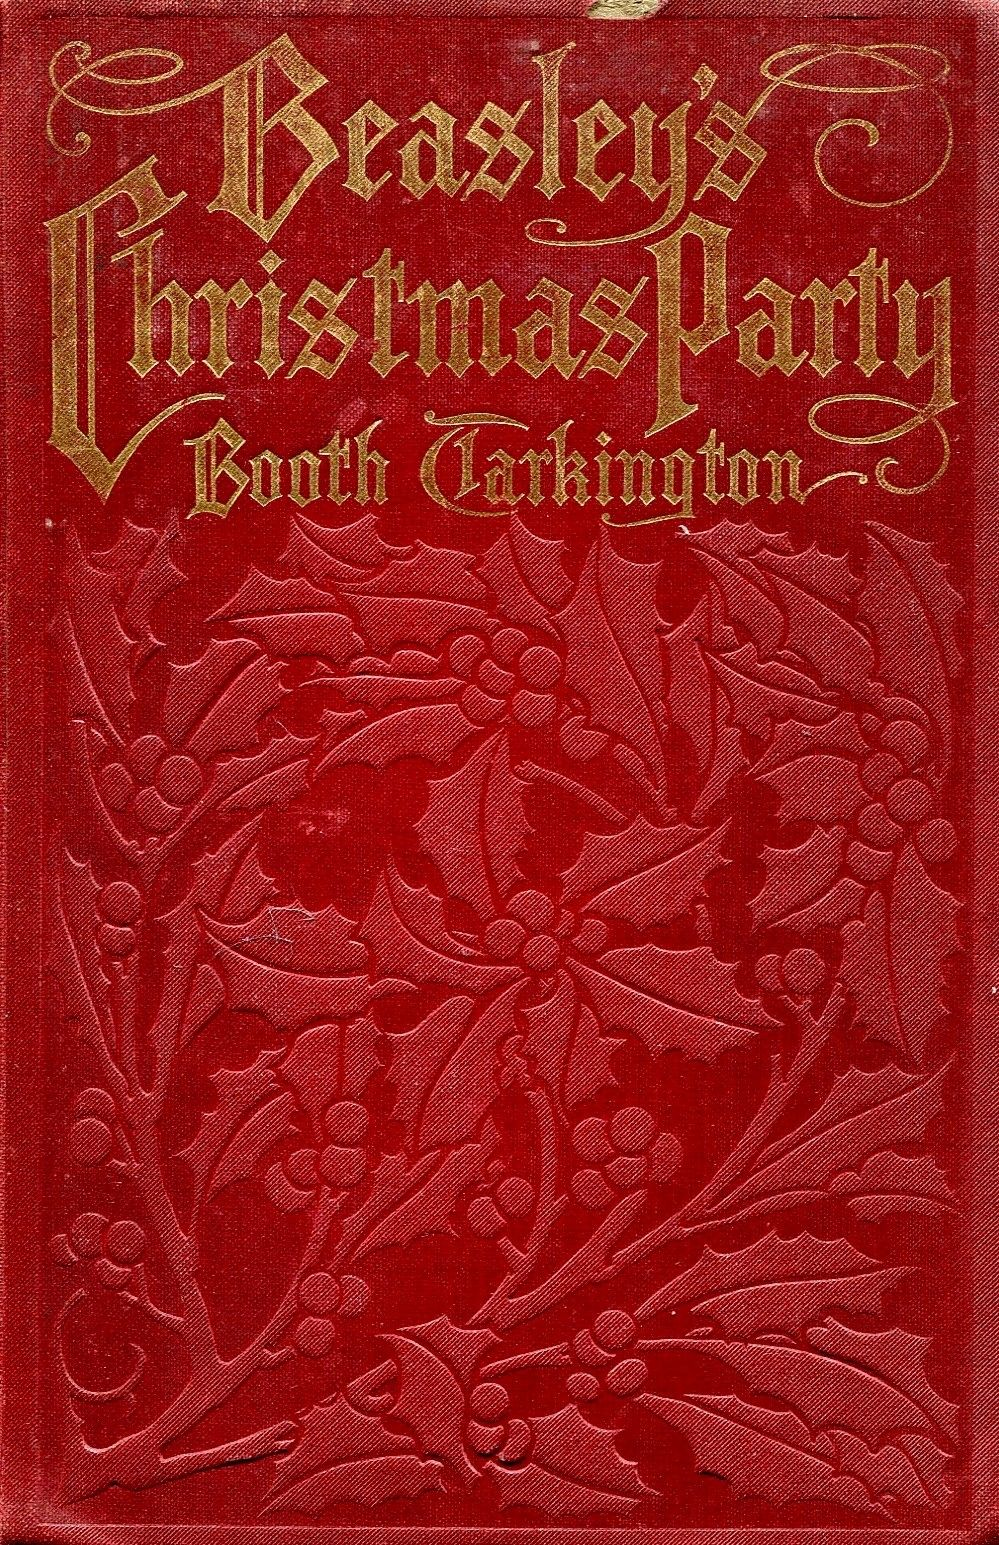 Beasley S Christmas Party Booth Tarkington 1909 Harper Brothers Book Cover Art Antique Books Book Cover Design